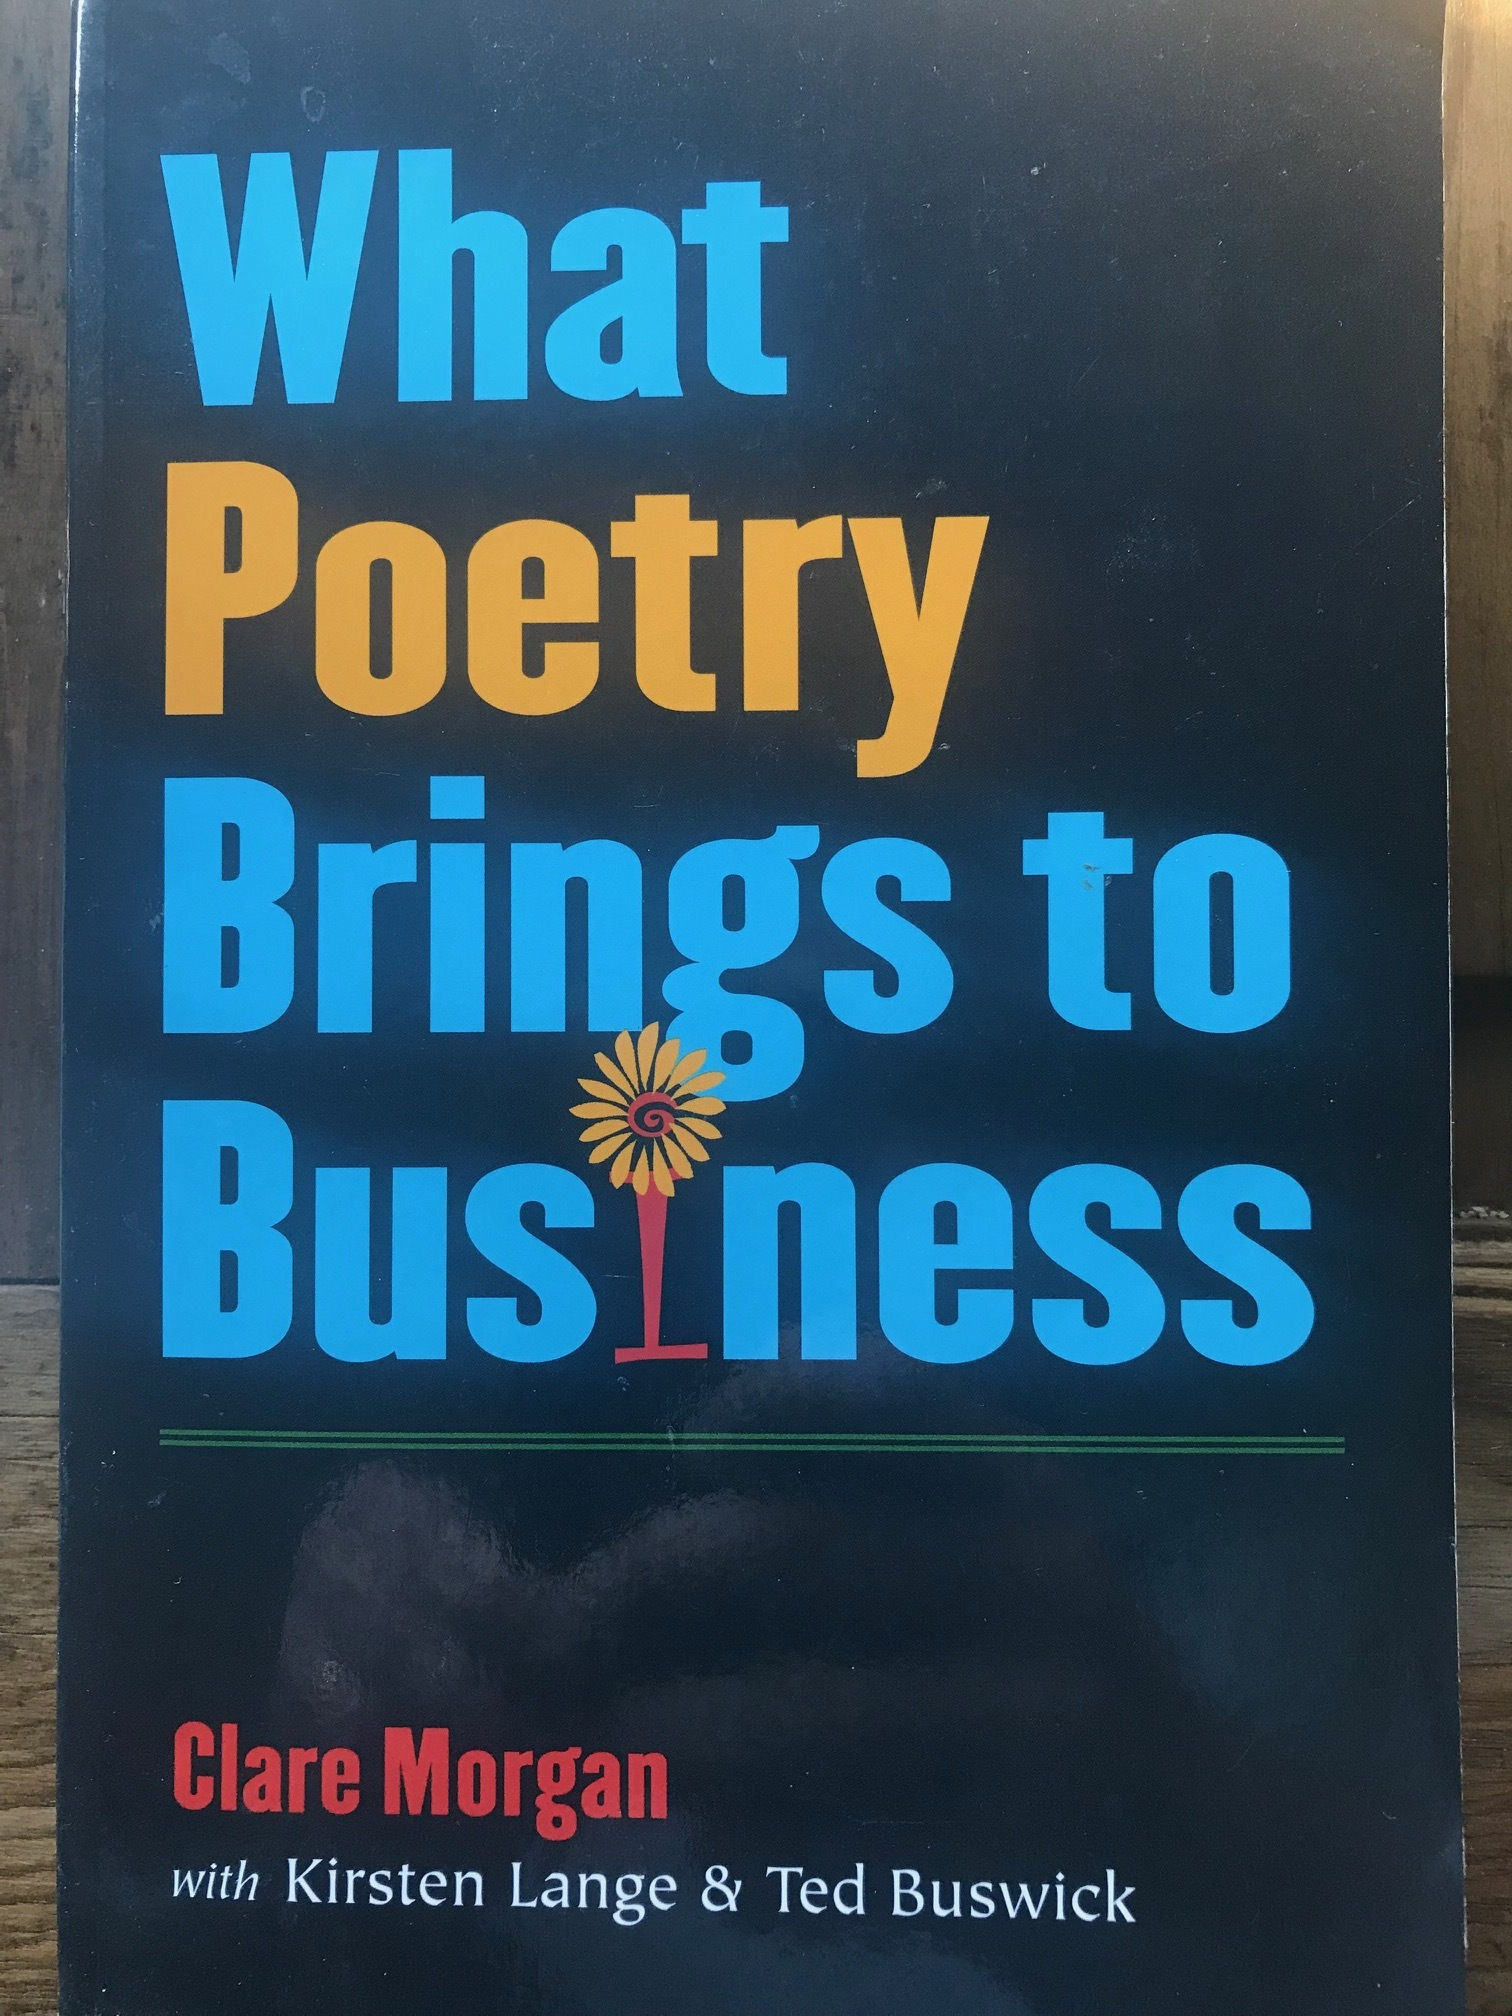 whatpoetrybringstobusiness.jpg